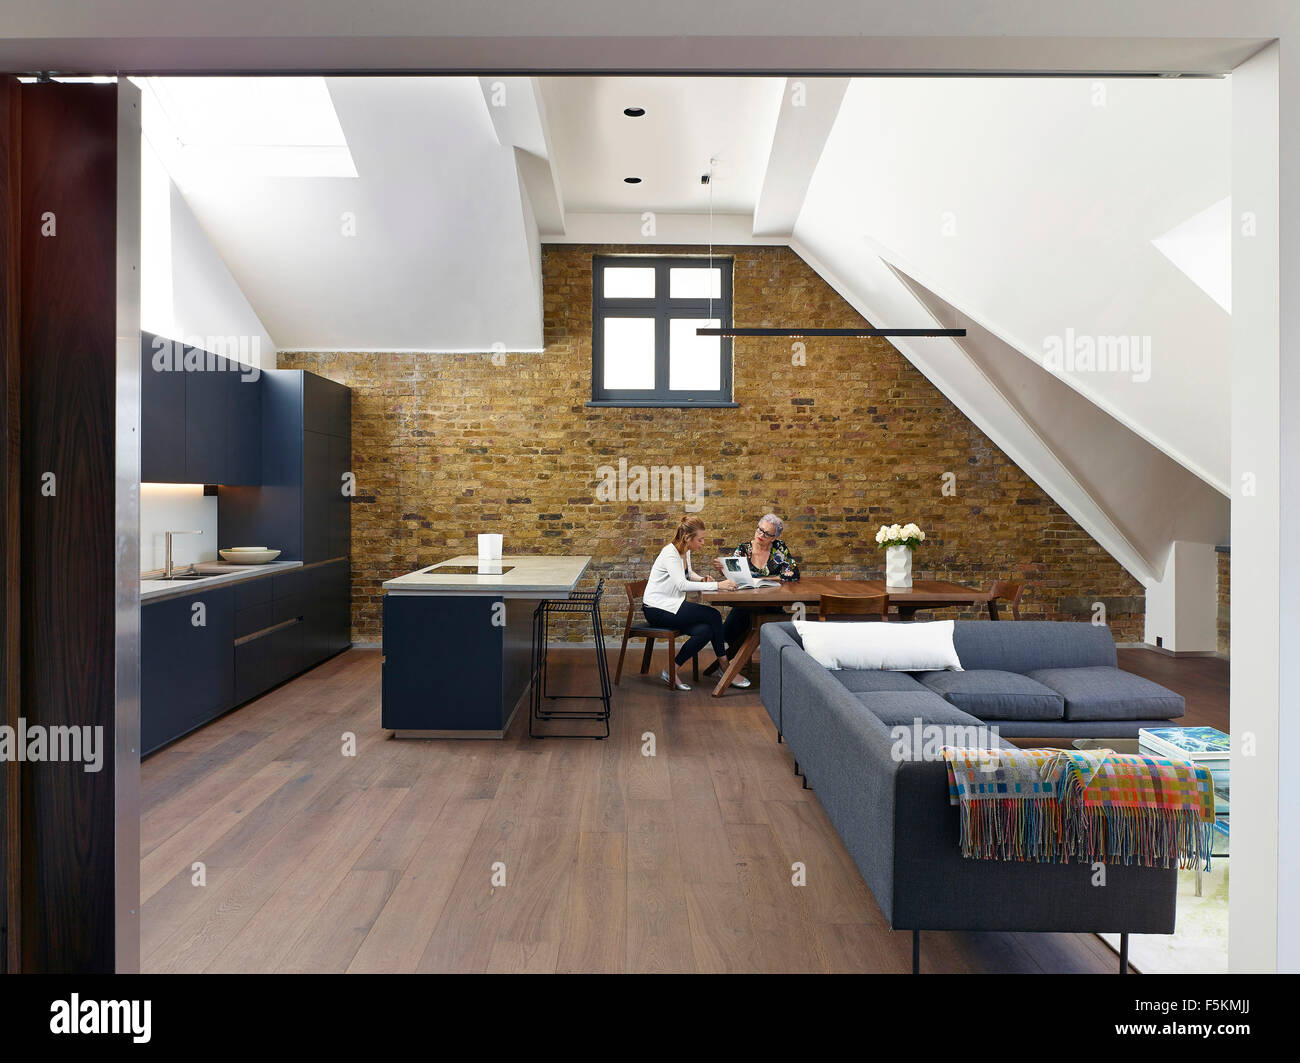 open plan kitchen and living area with skylights and exposed brick wall mandeville apartment london united kingdom architect - Brick Apartment 2015